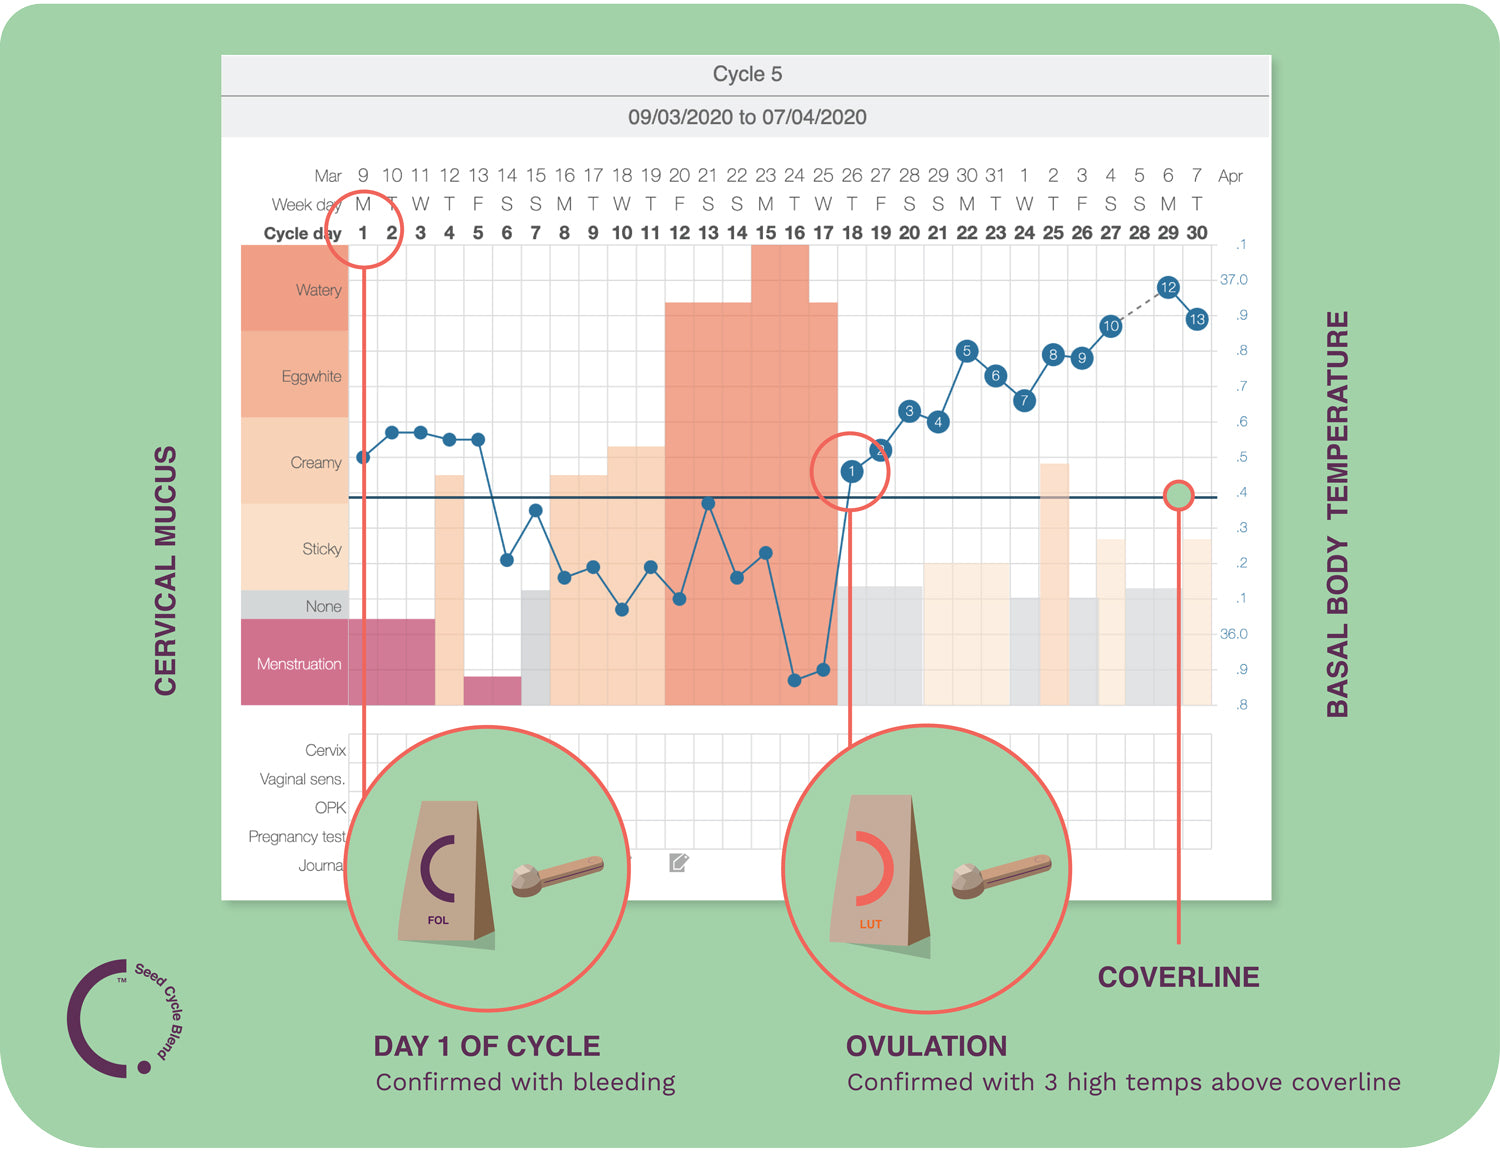 seed-cycle-blend-kindara-app-chart-fertility-awareness-basal-body-thermometer-temperature-seed-cycling